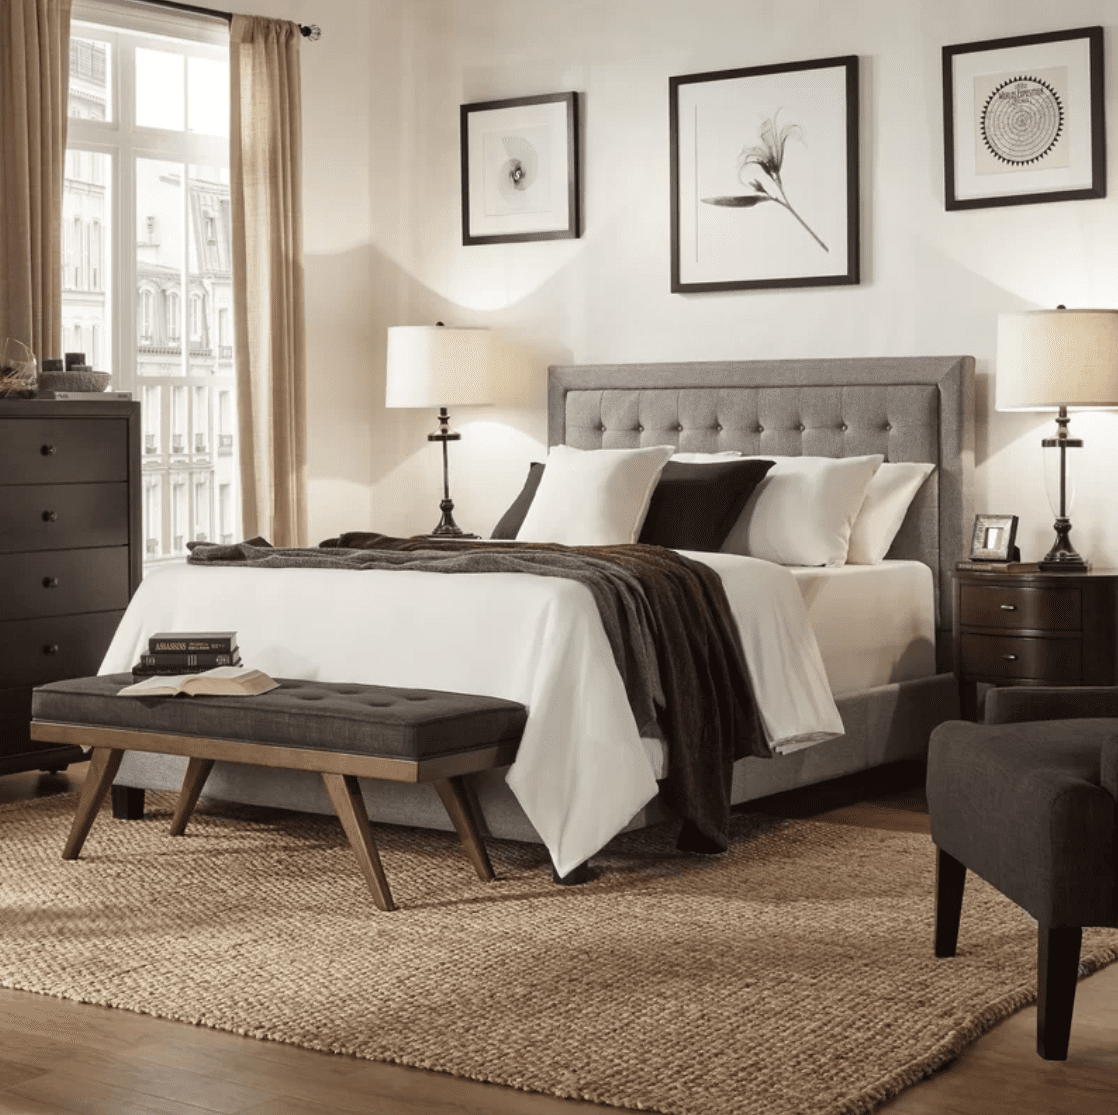 The 8 Best Places to Buy a Bed in 8